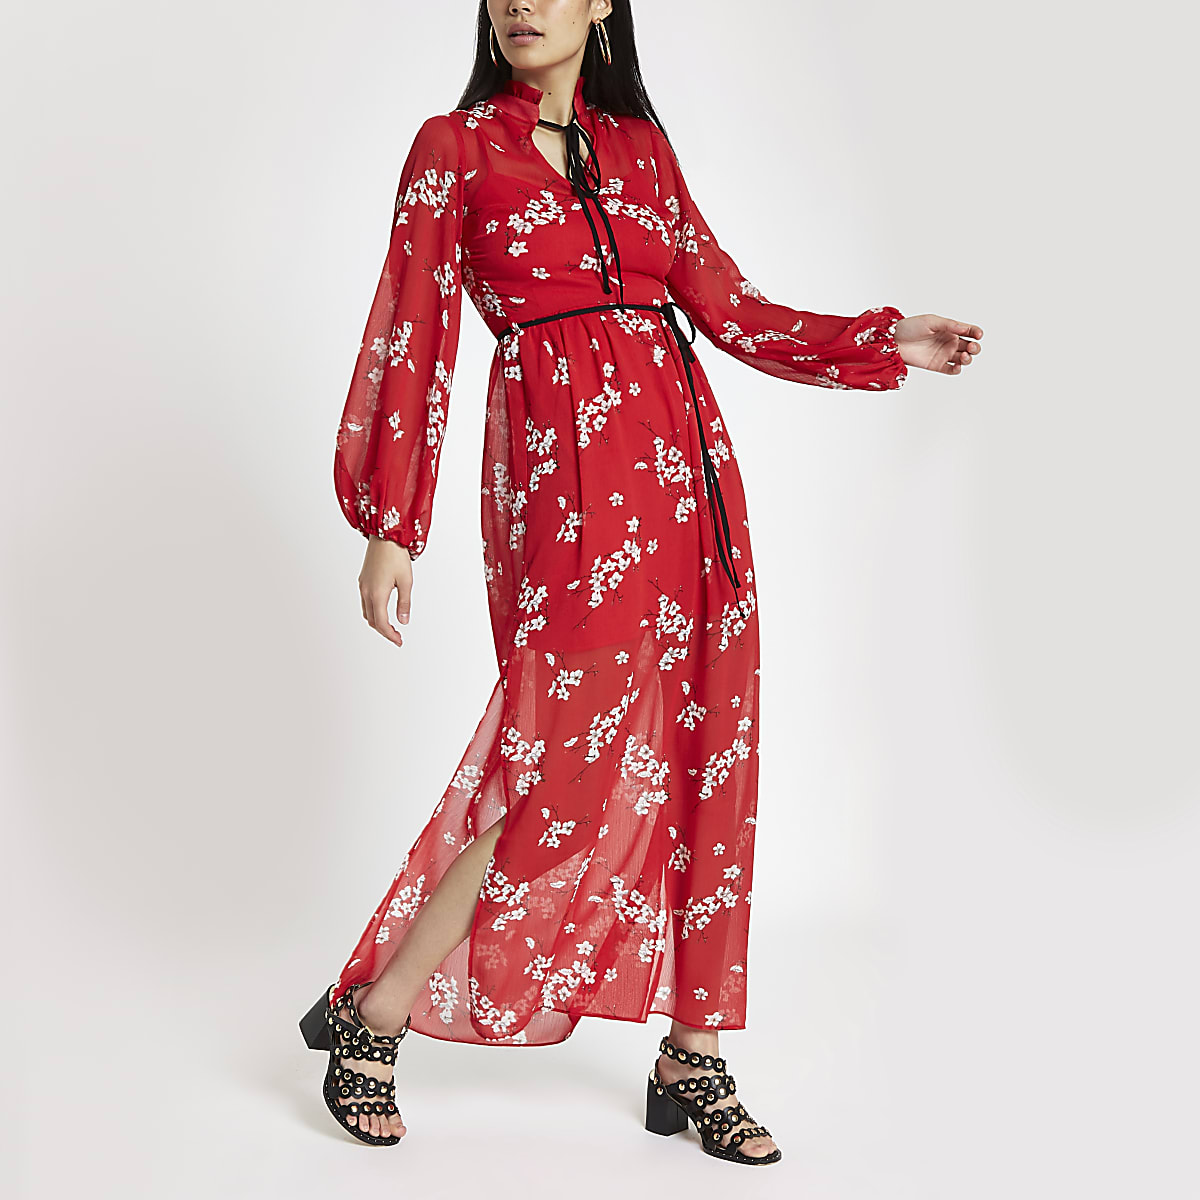 d179ae61c8a Red floral tie neck maxi dress - Maxi Dresses - Dresses - women